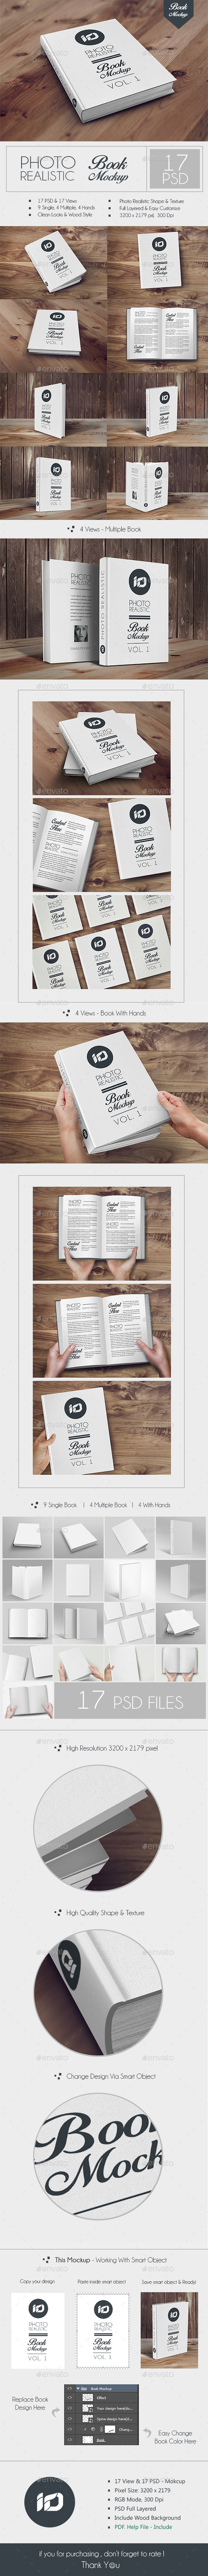 GraphicRiver ID Book Mock-up Photorealistic 8974134